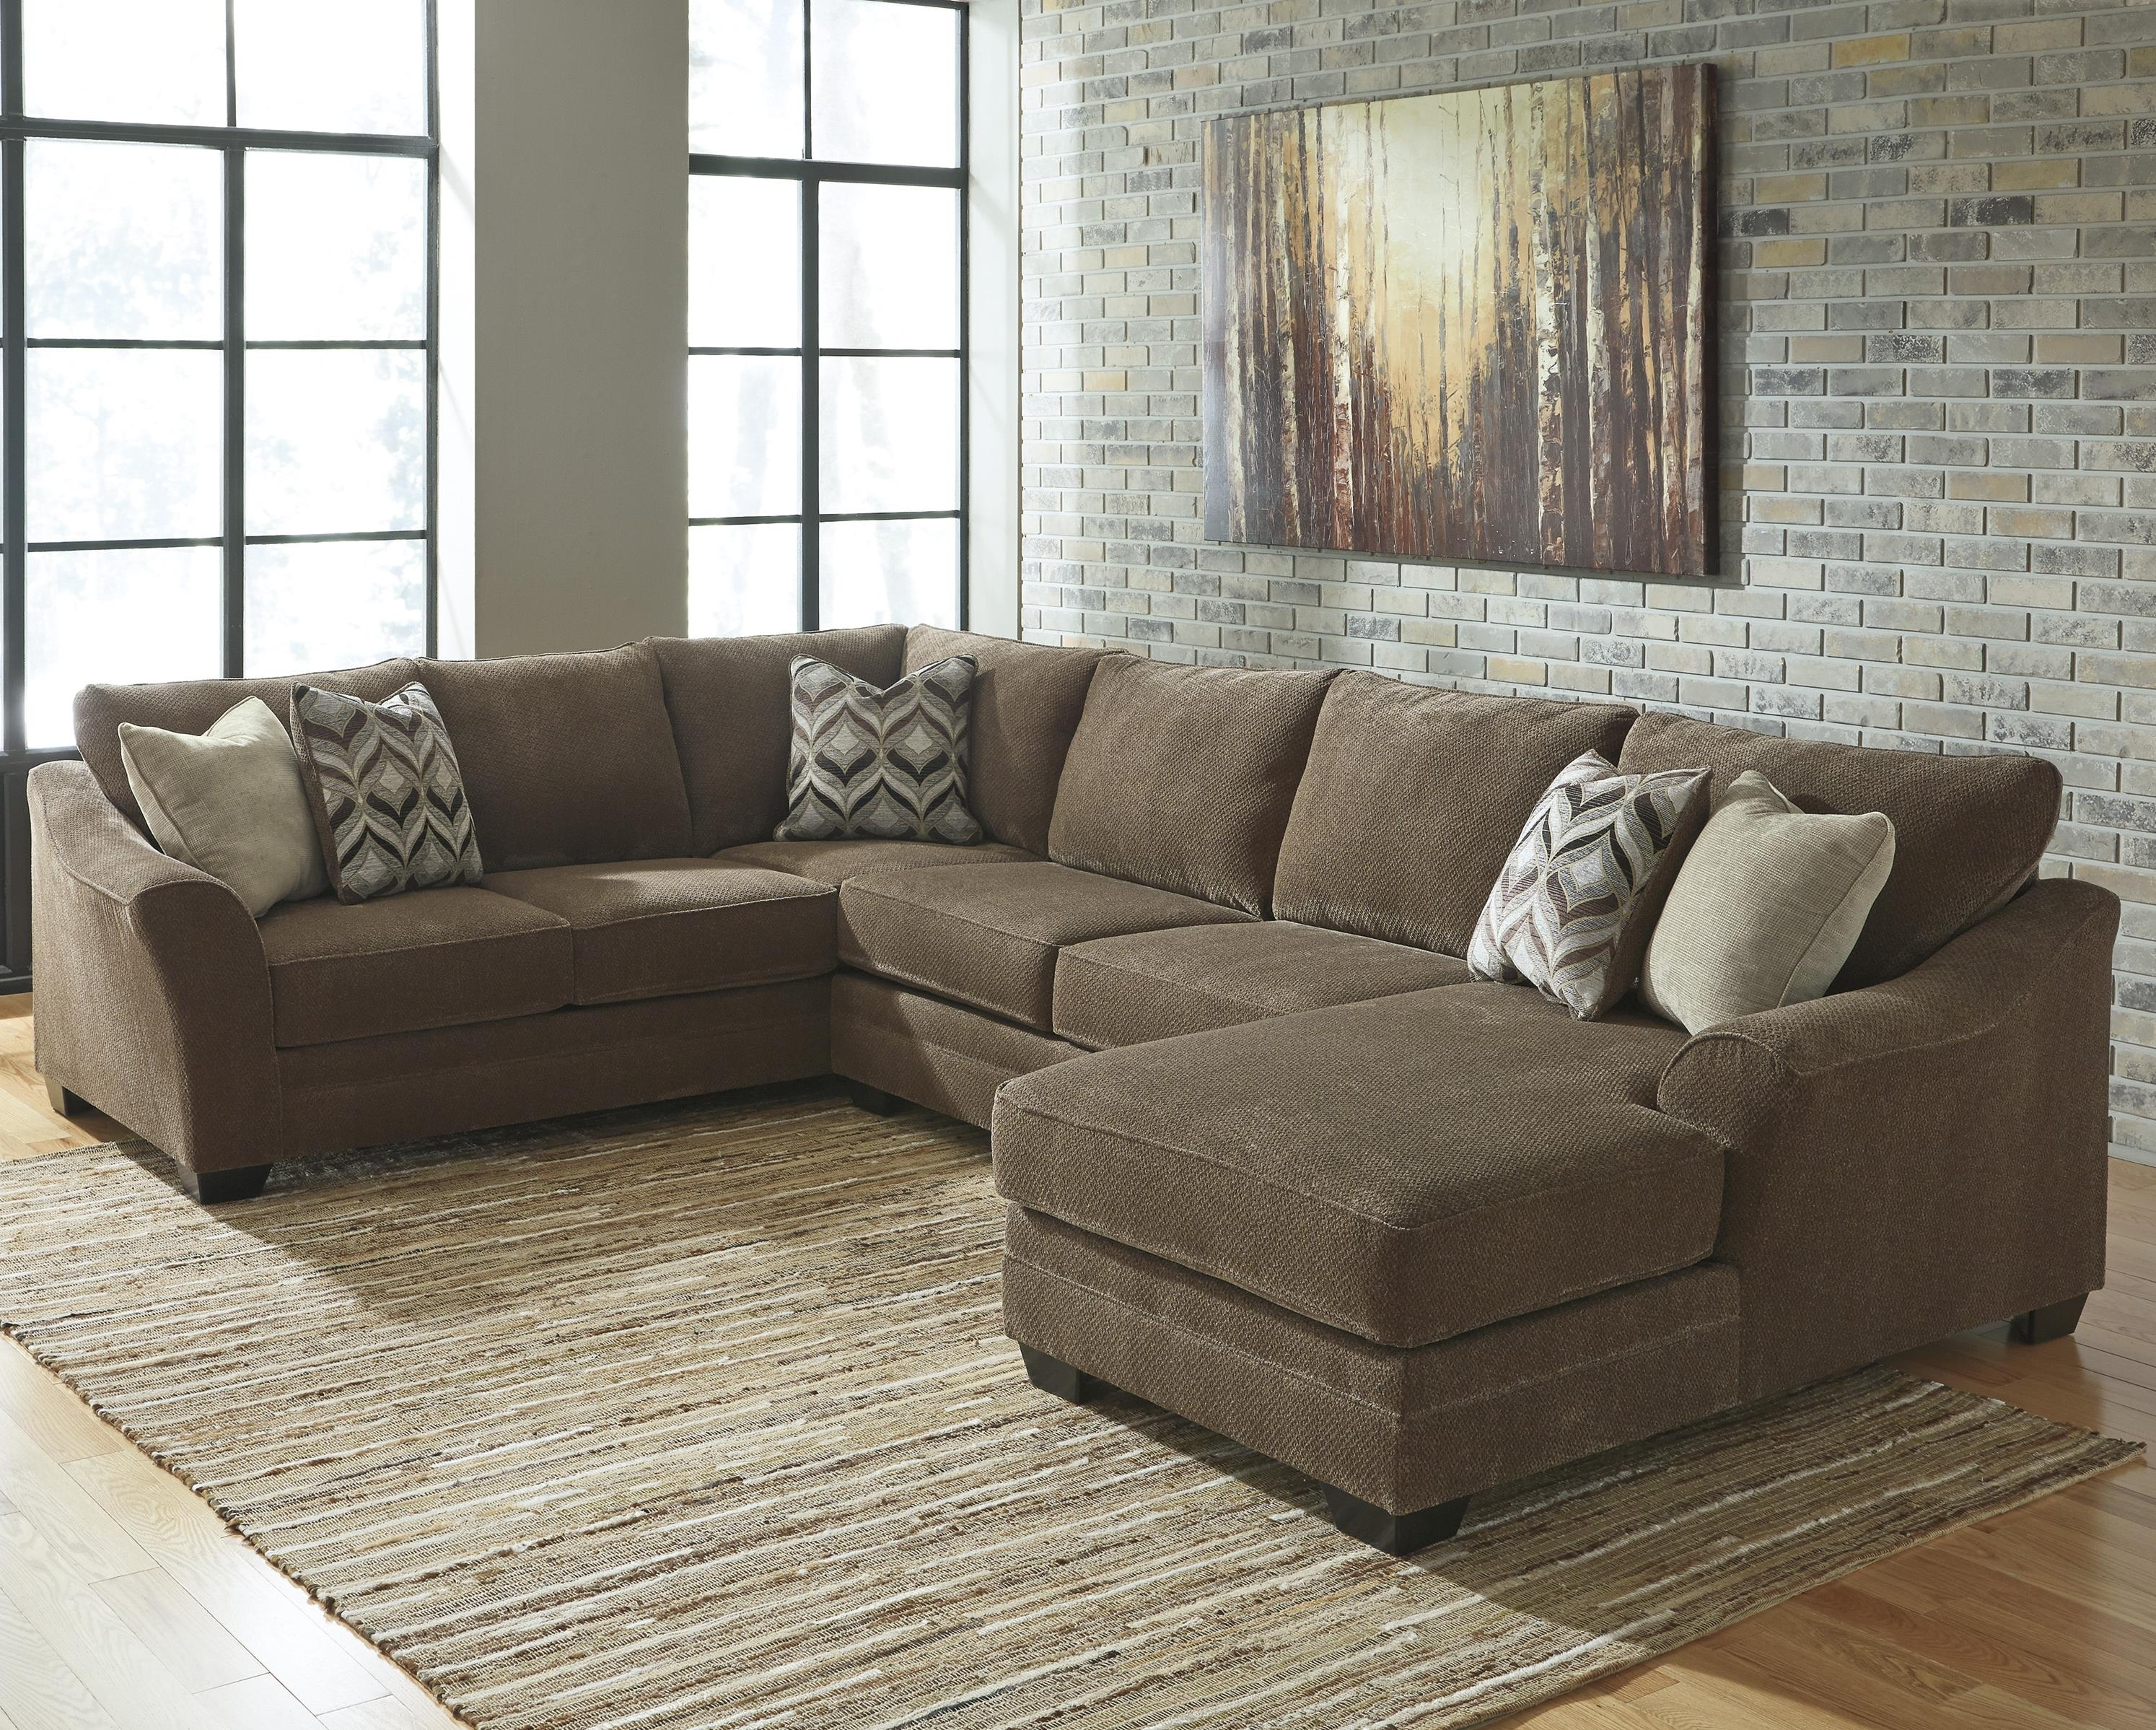 3 Piece Sectional   Locsbyhelenelorasa With Regard To Delano Smoke 3 Piece Sectionals (Photo 15 of 30)